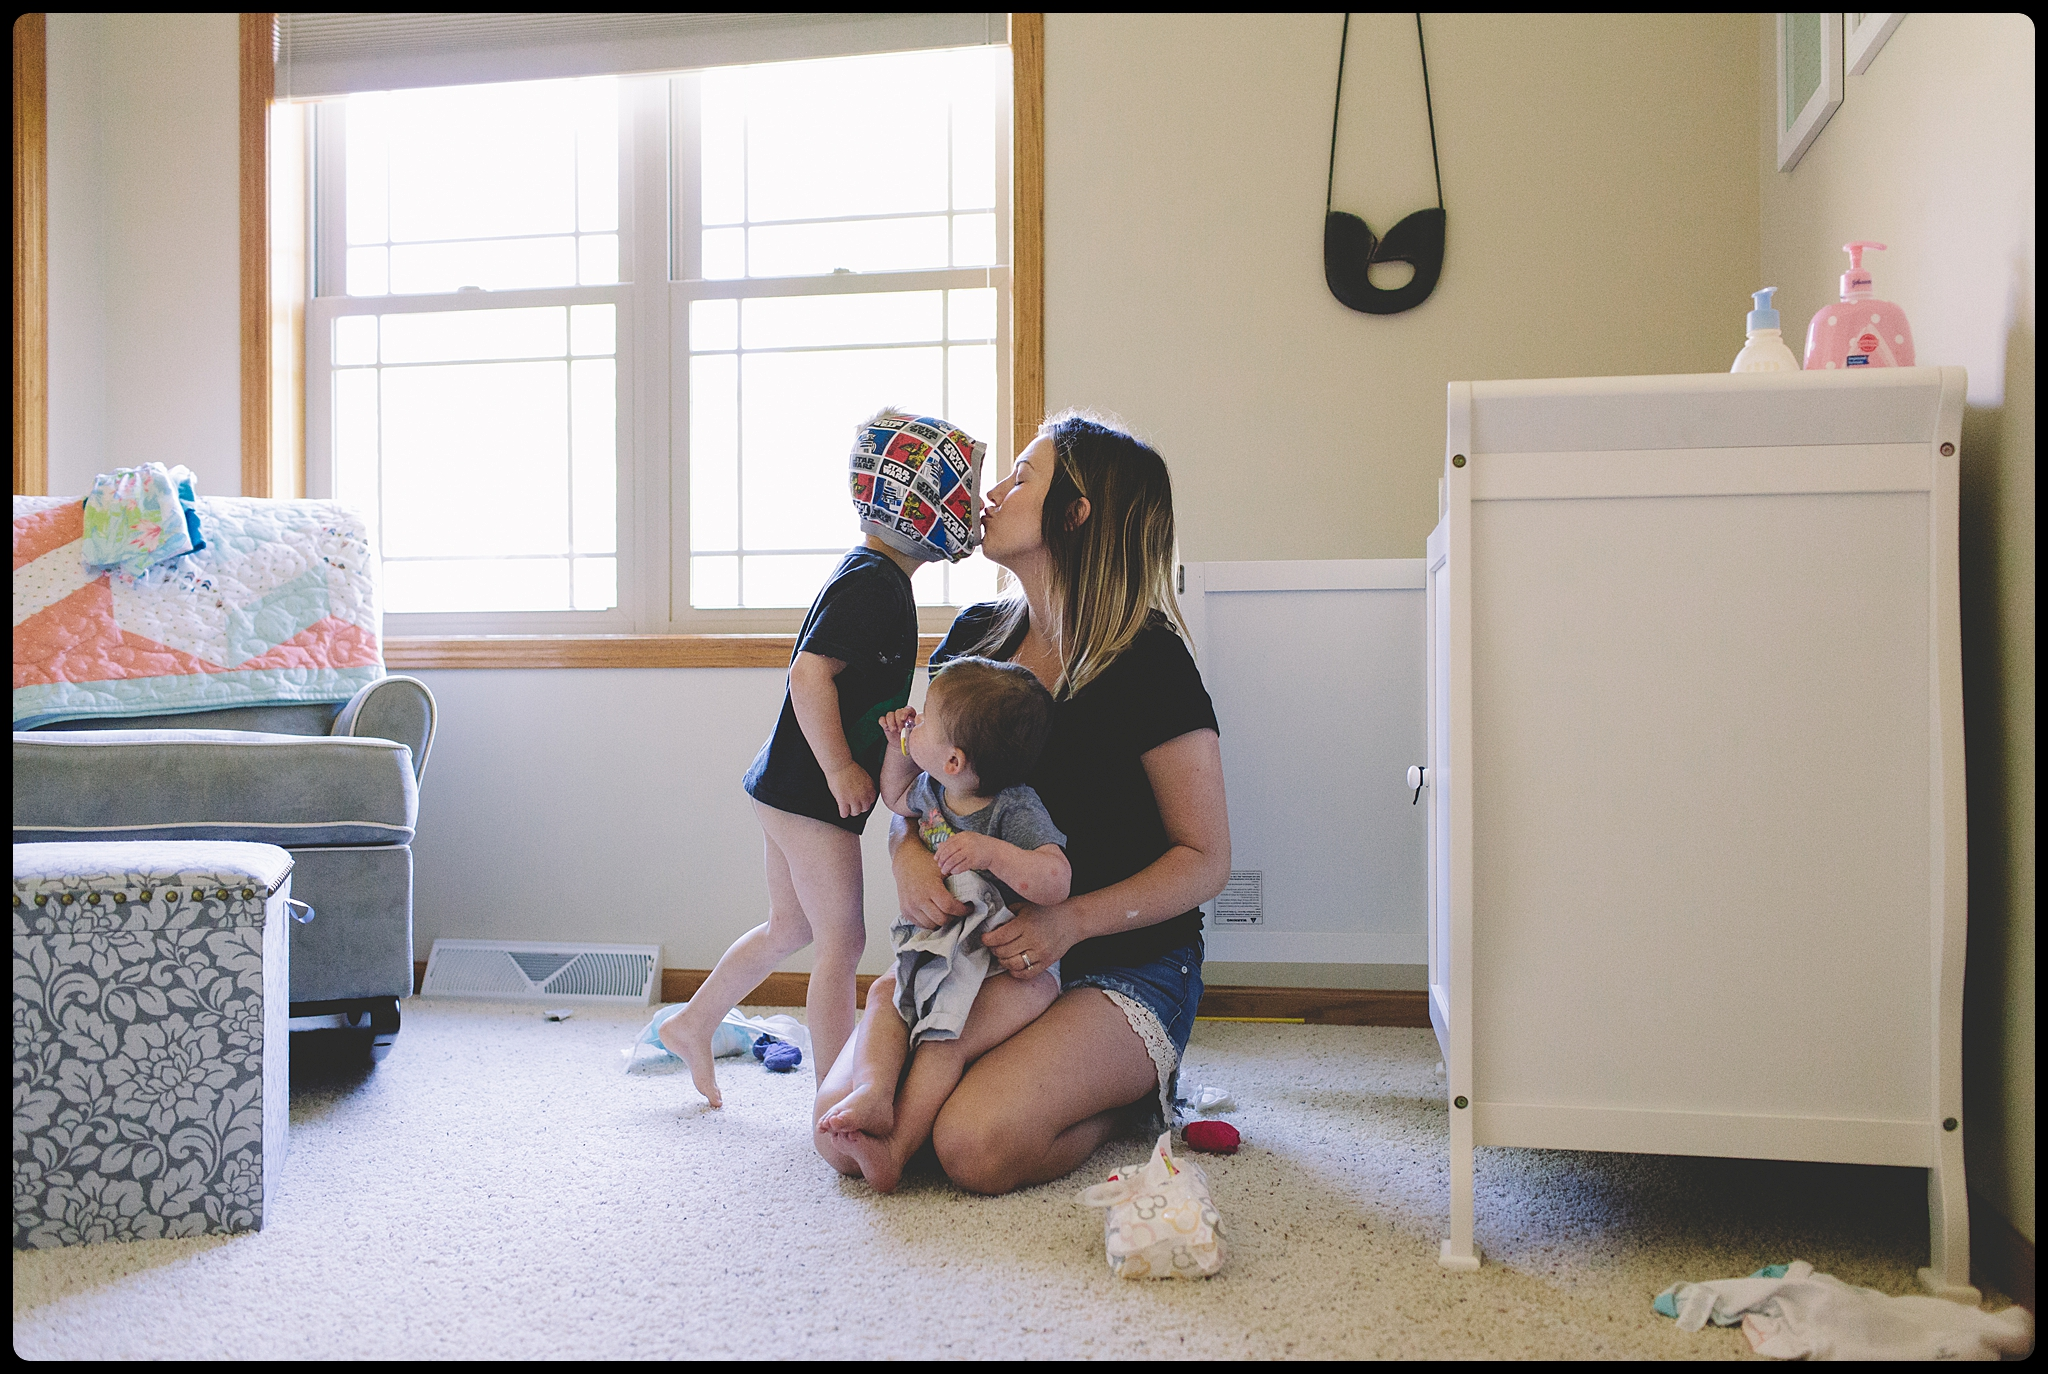 Boy with underwear on his head, kisses mom who's changing baby diaper.